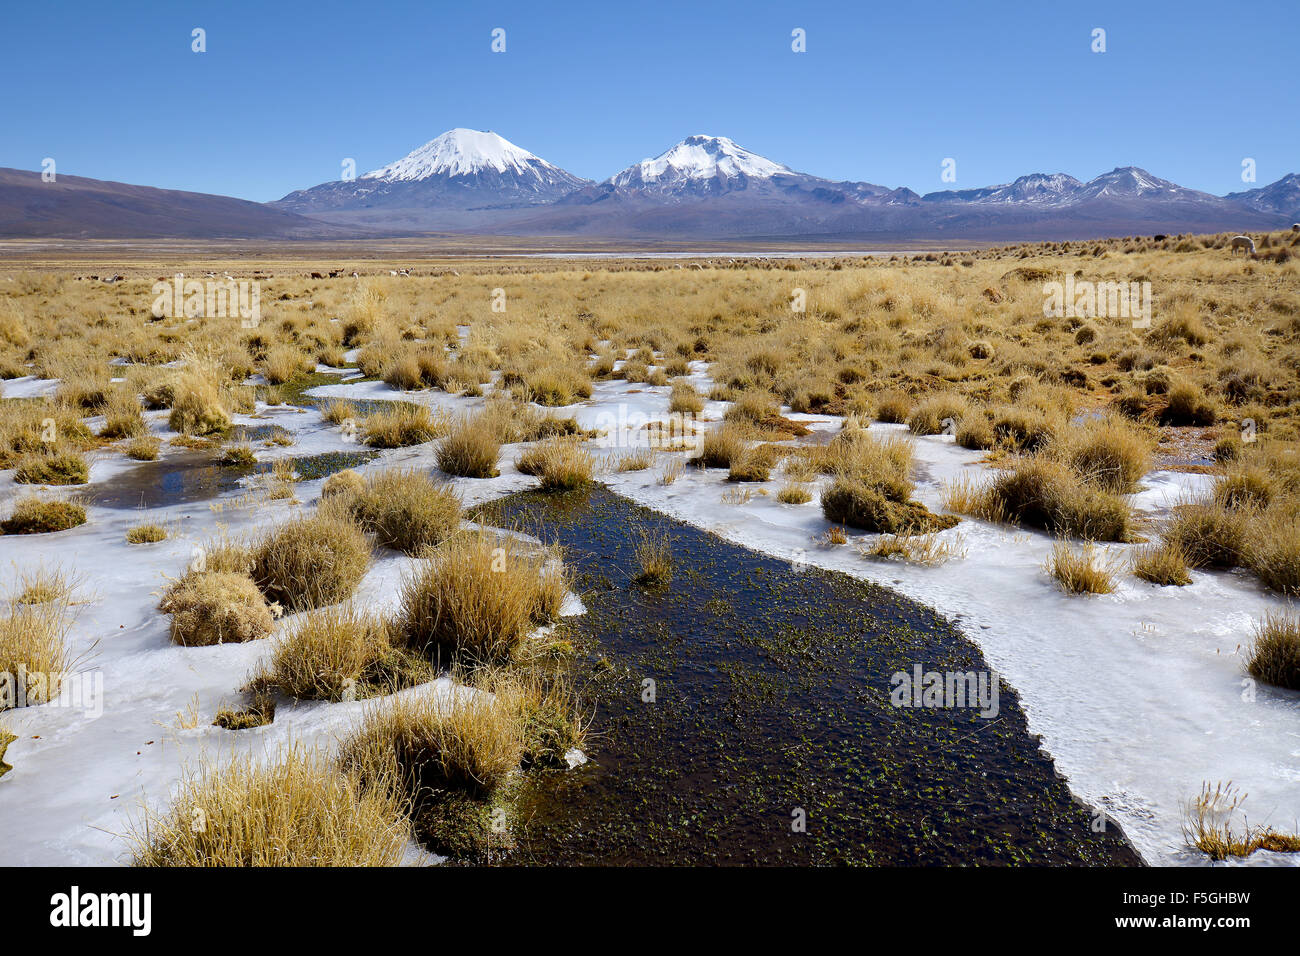 Snow-covered volcanoes Pomerape and Parinacota, frozen water, Sajama National Park, border between Bolivia and Chile - Stock Image